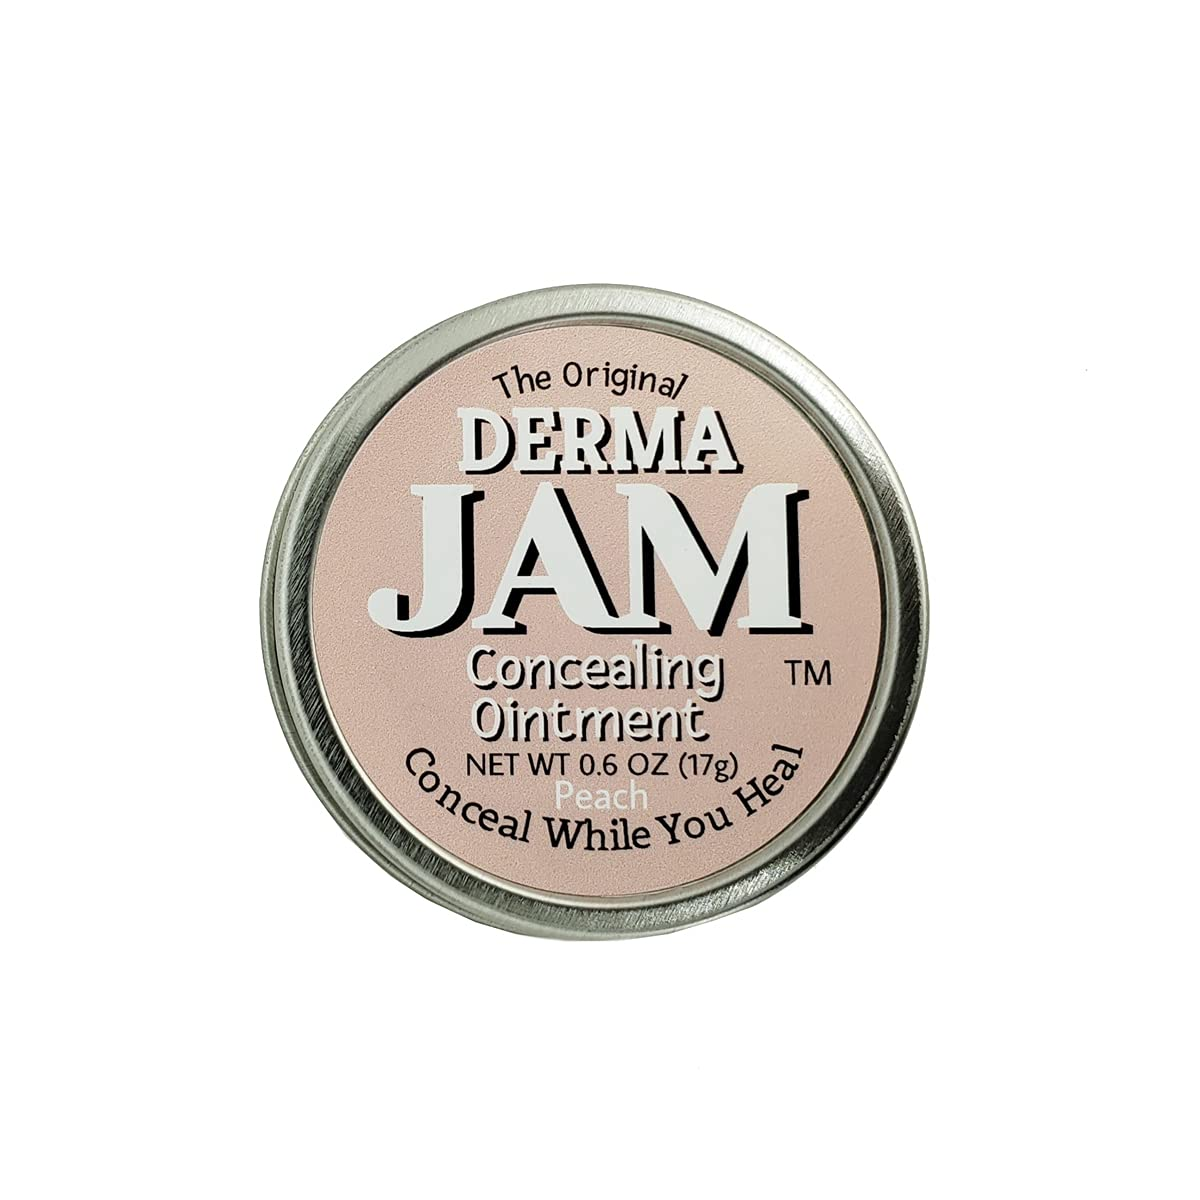 Derma Sales of SALE items from new works JAM Concealing Ointment Peach The New products world's highest quality popular Wound Conceali Amazing